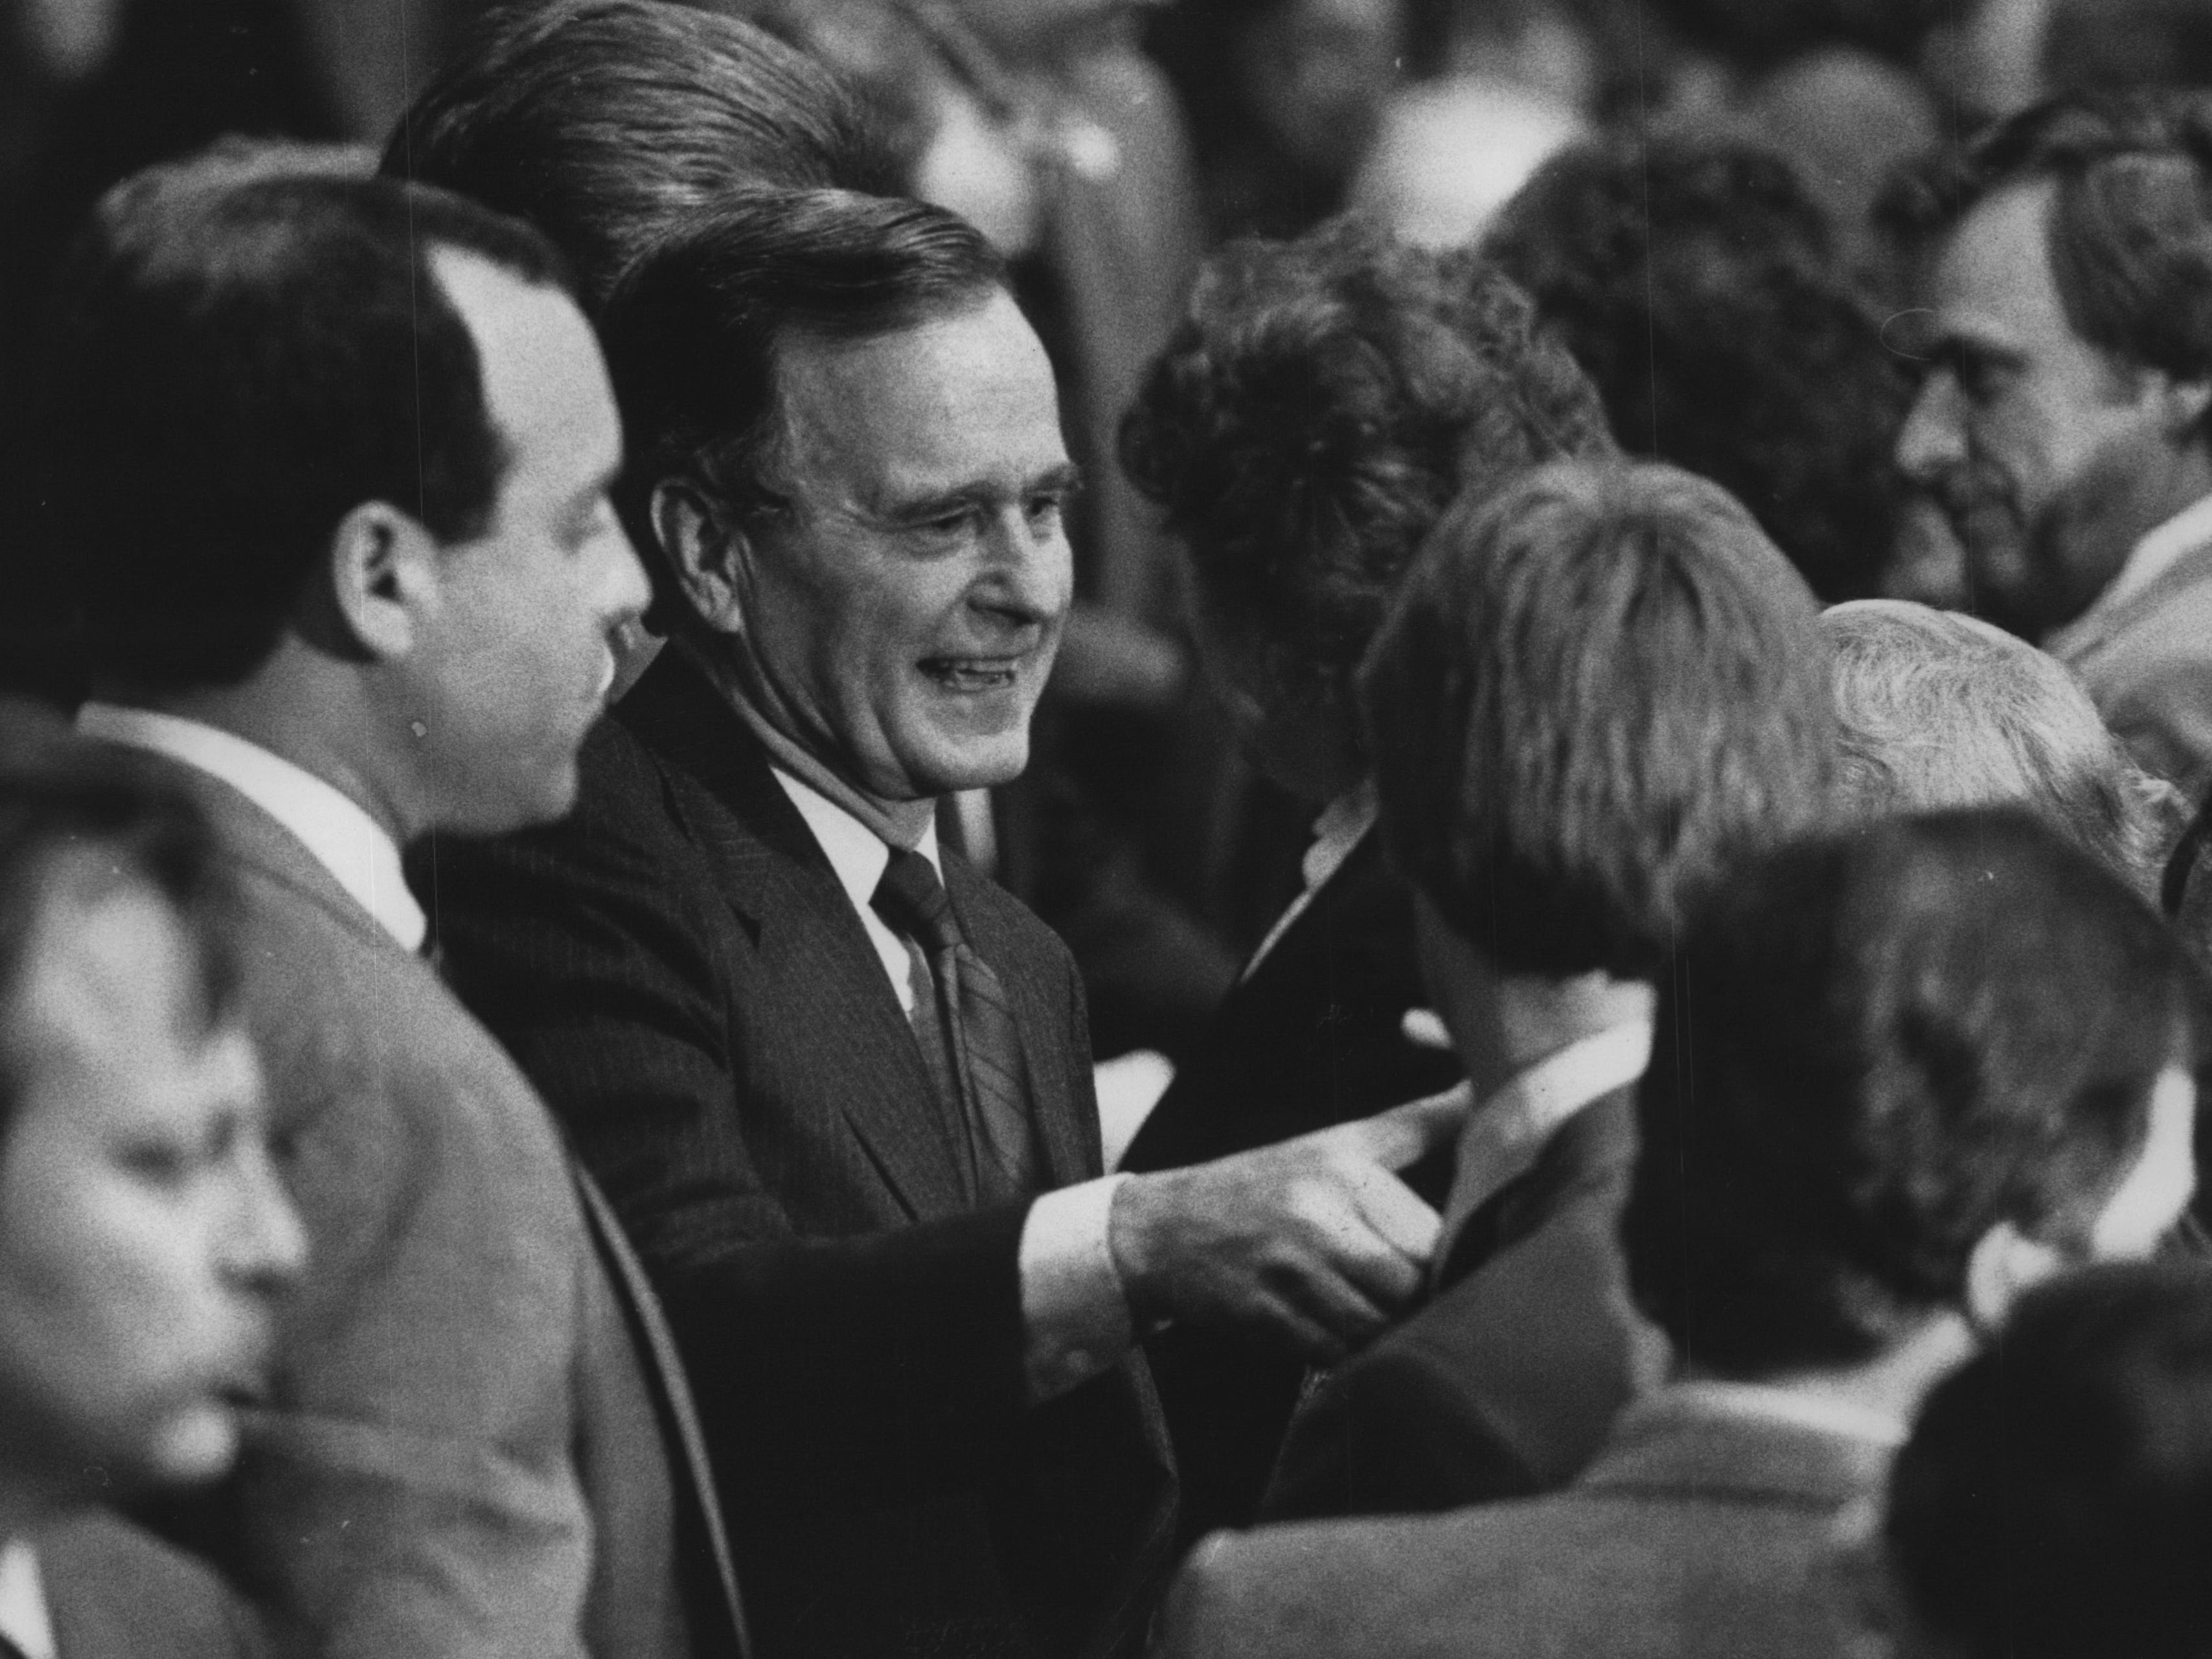 Vice President George Bush shakes hands with a crowd of well-wishers after a campaign appearance in 1988 at Cedarburg High School.